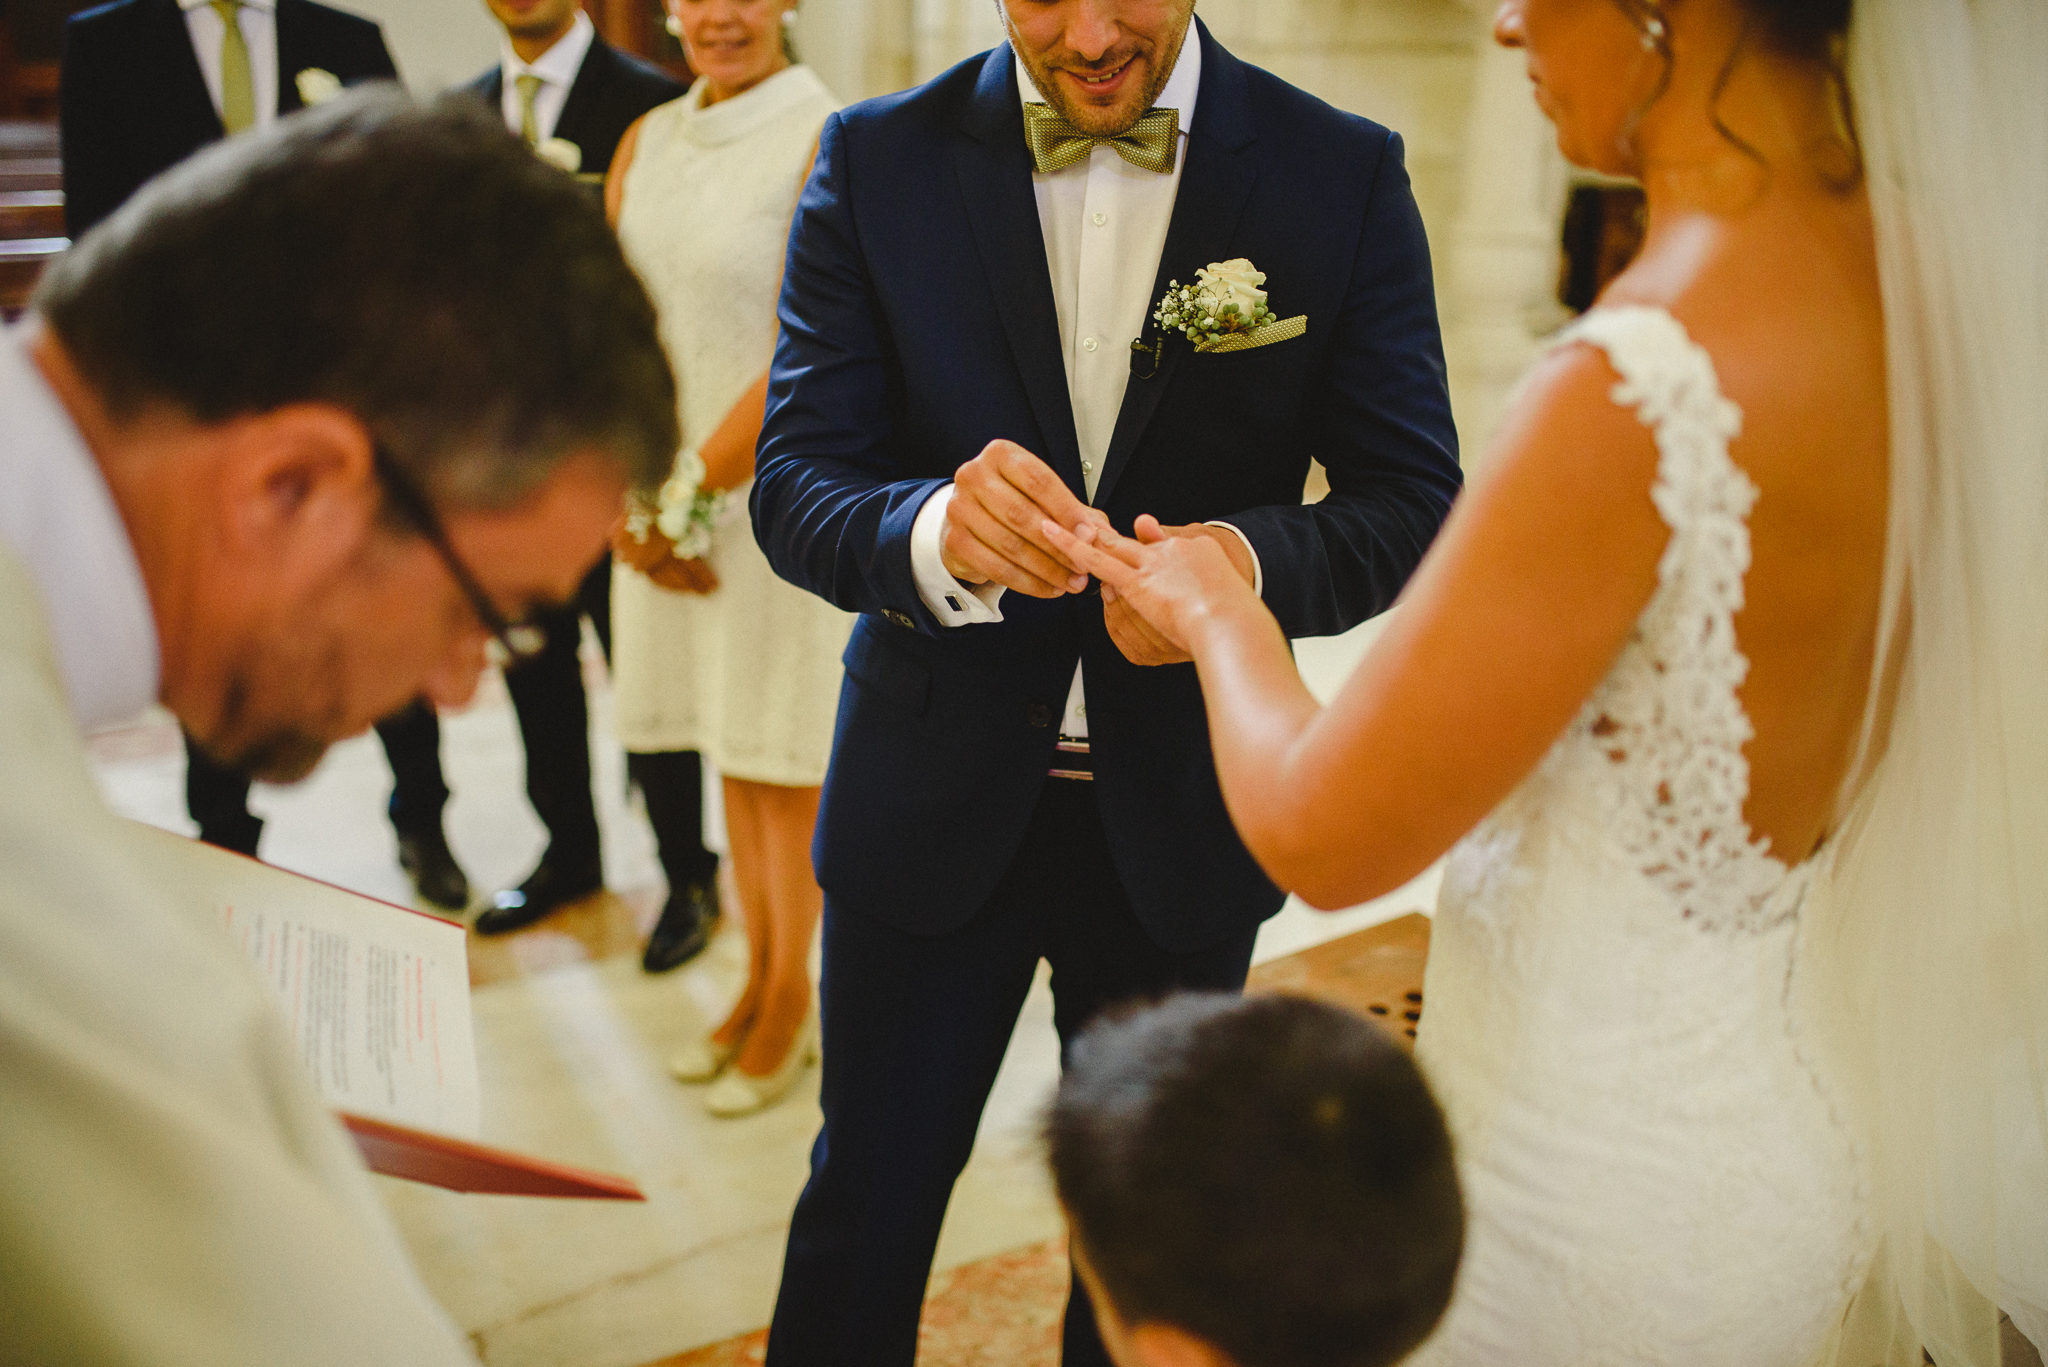 Groom putting wedding ring in bride's finger